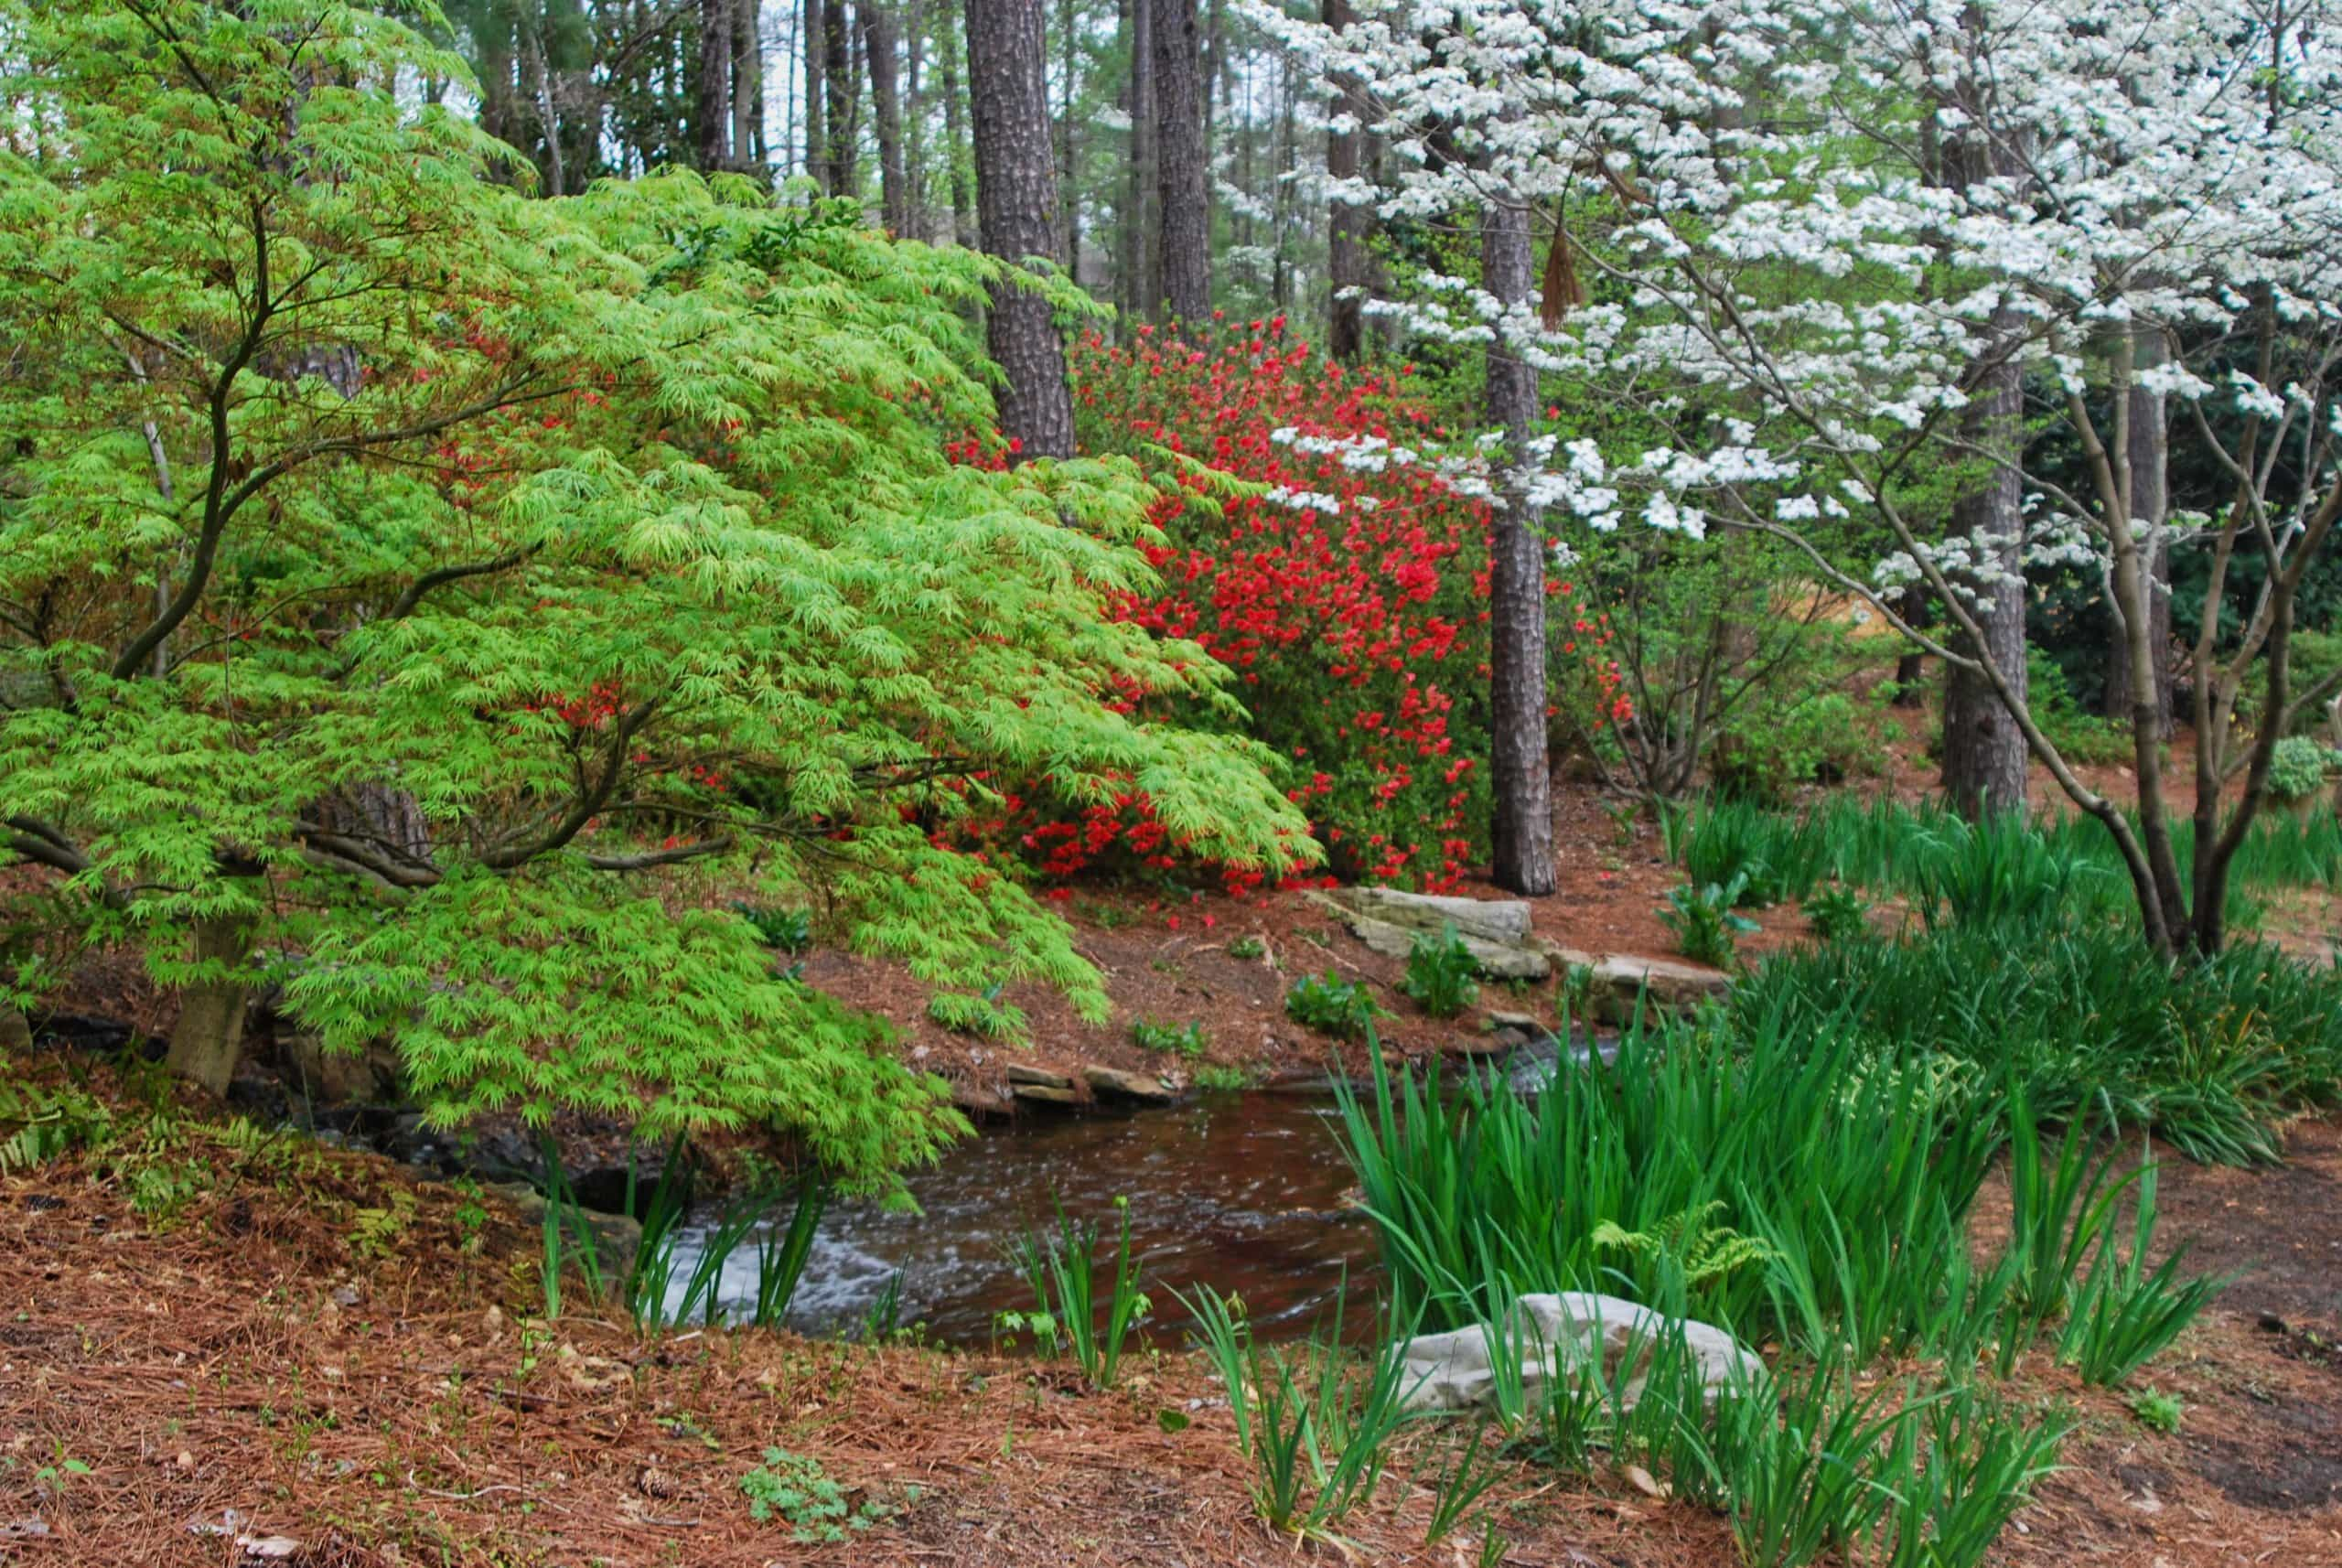 Woodland garden at Aldridge Botanical Gardens